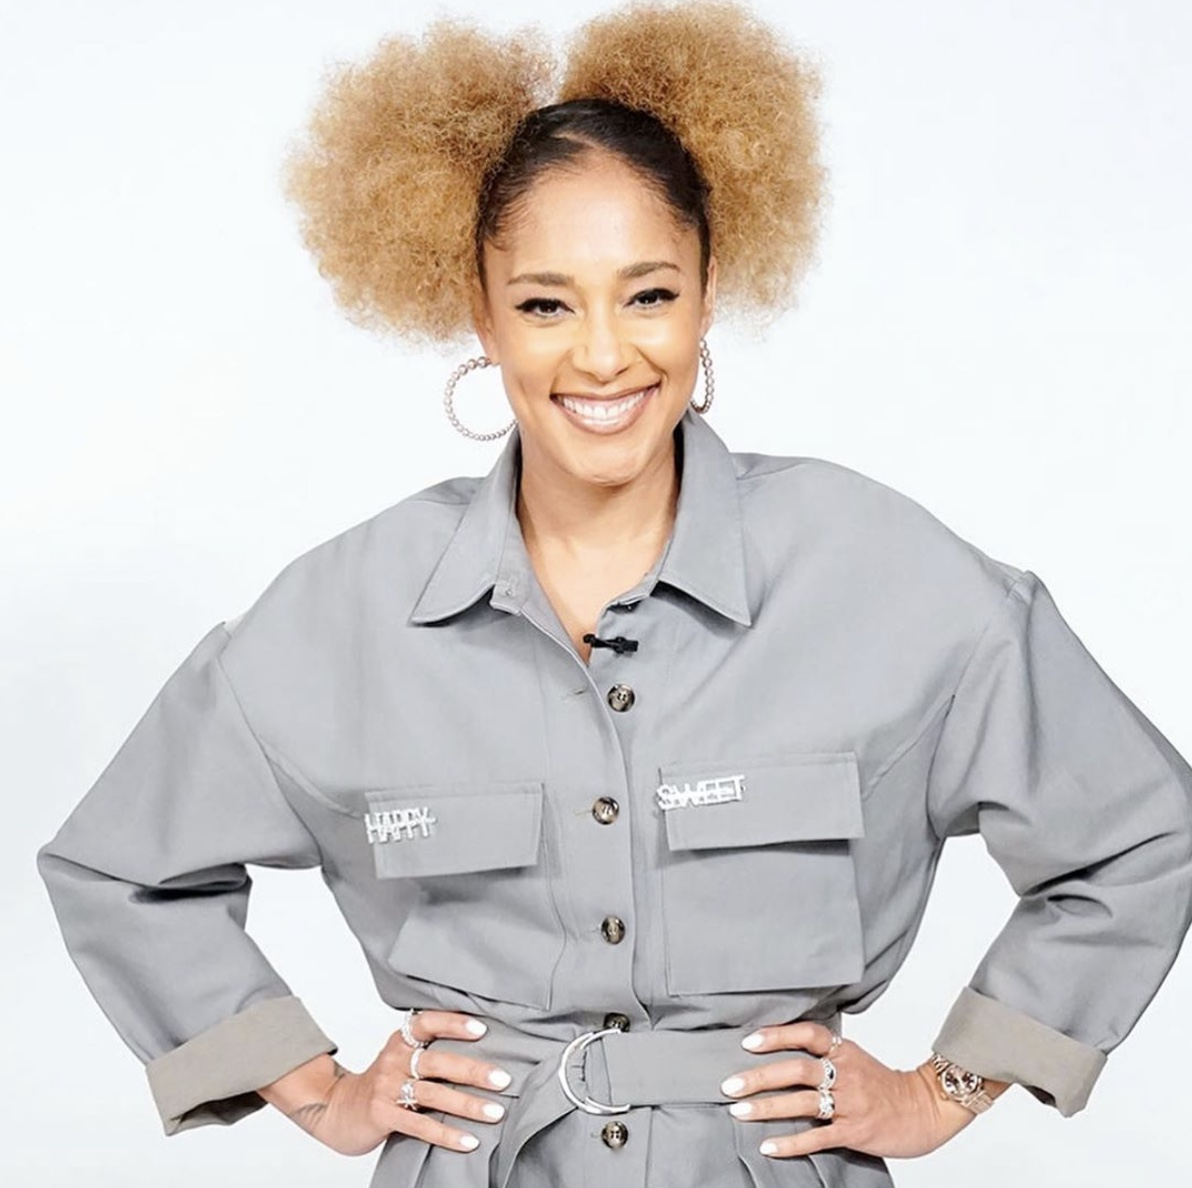 Amanda Seales Double Blonde Natural Hair Buns StyleRave